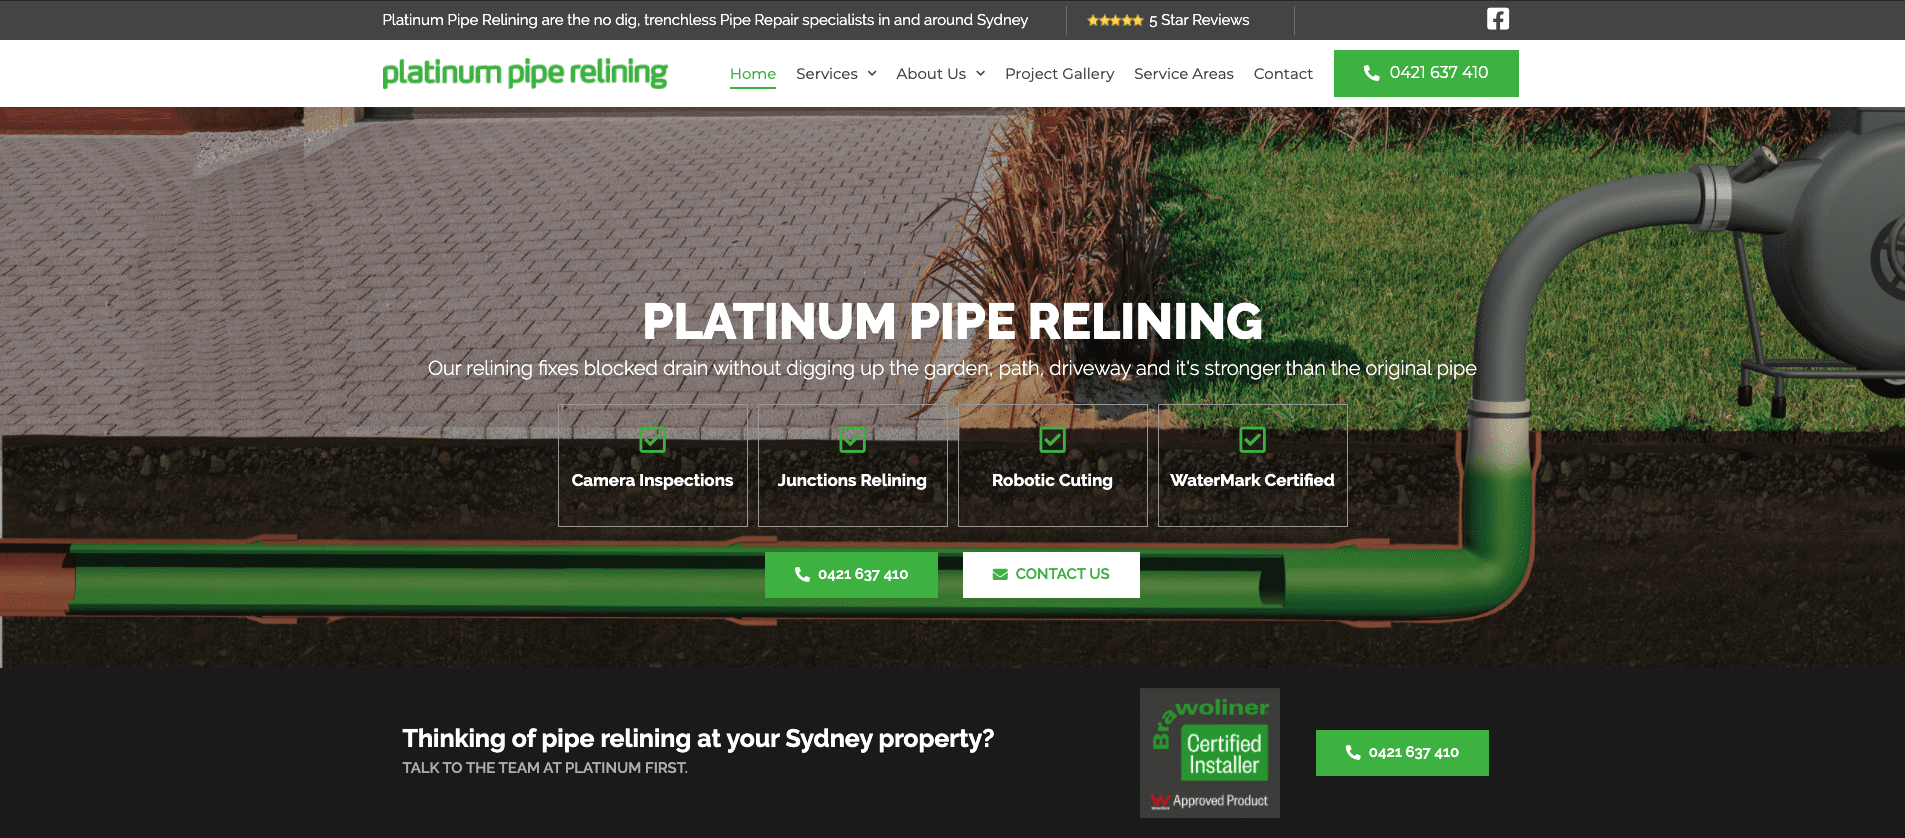 Platinum Pipe Relining Websites Homepage - Full website